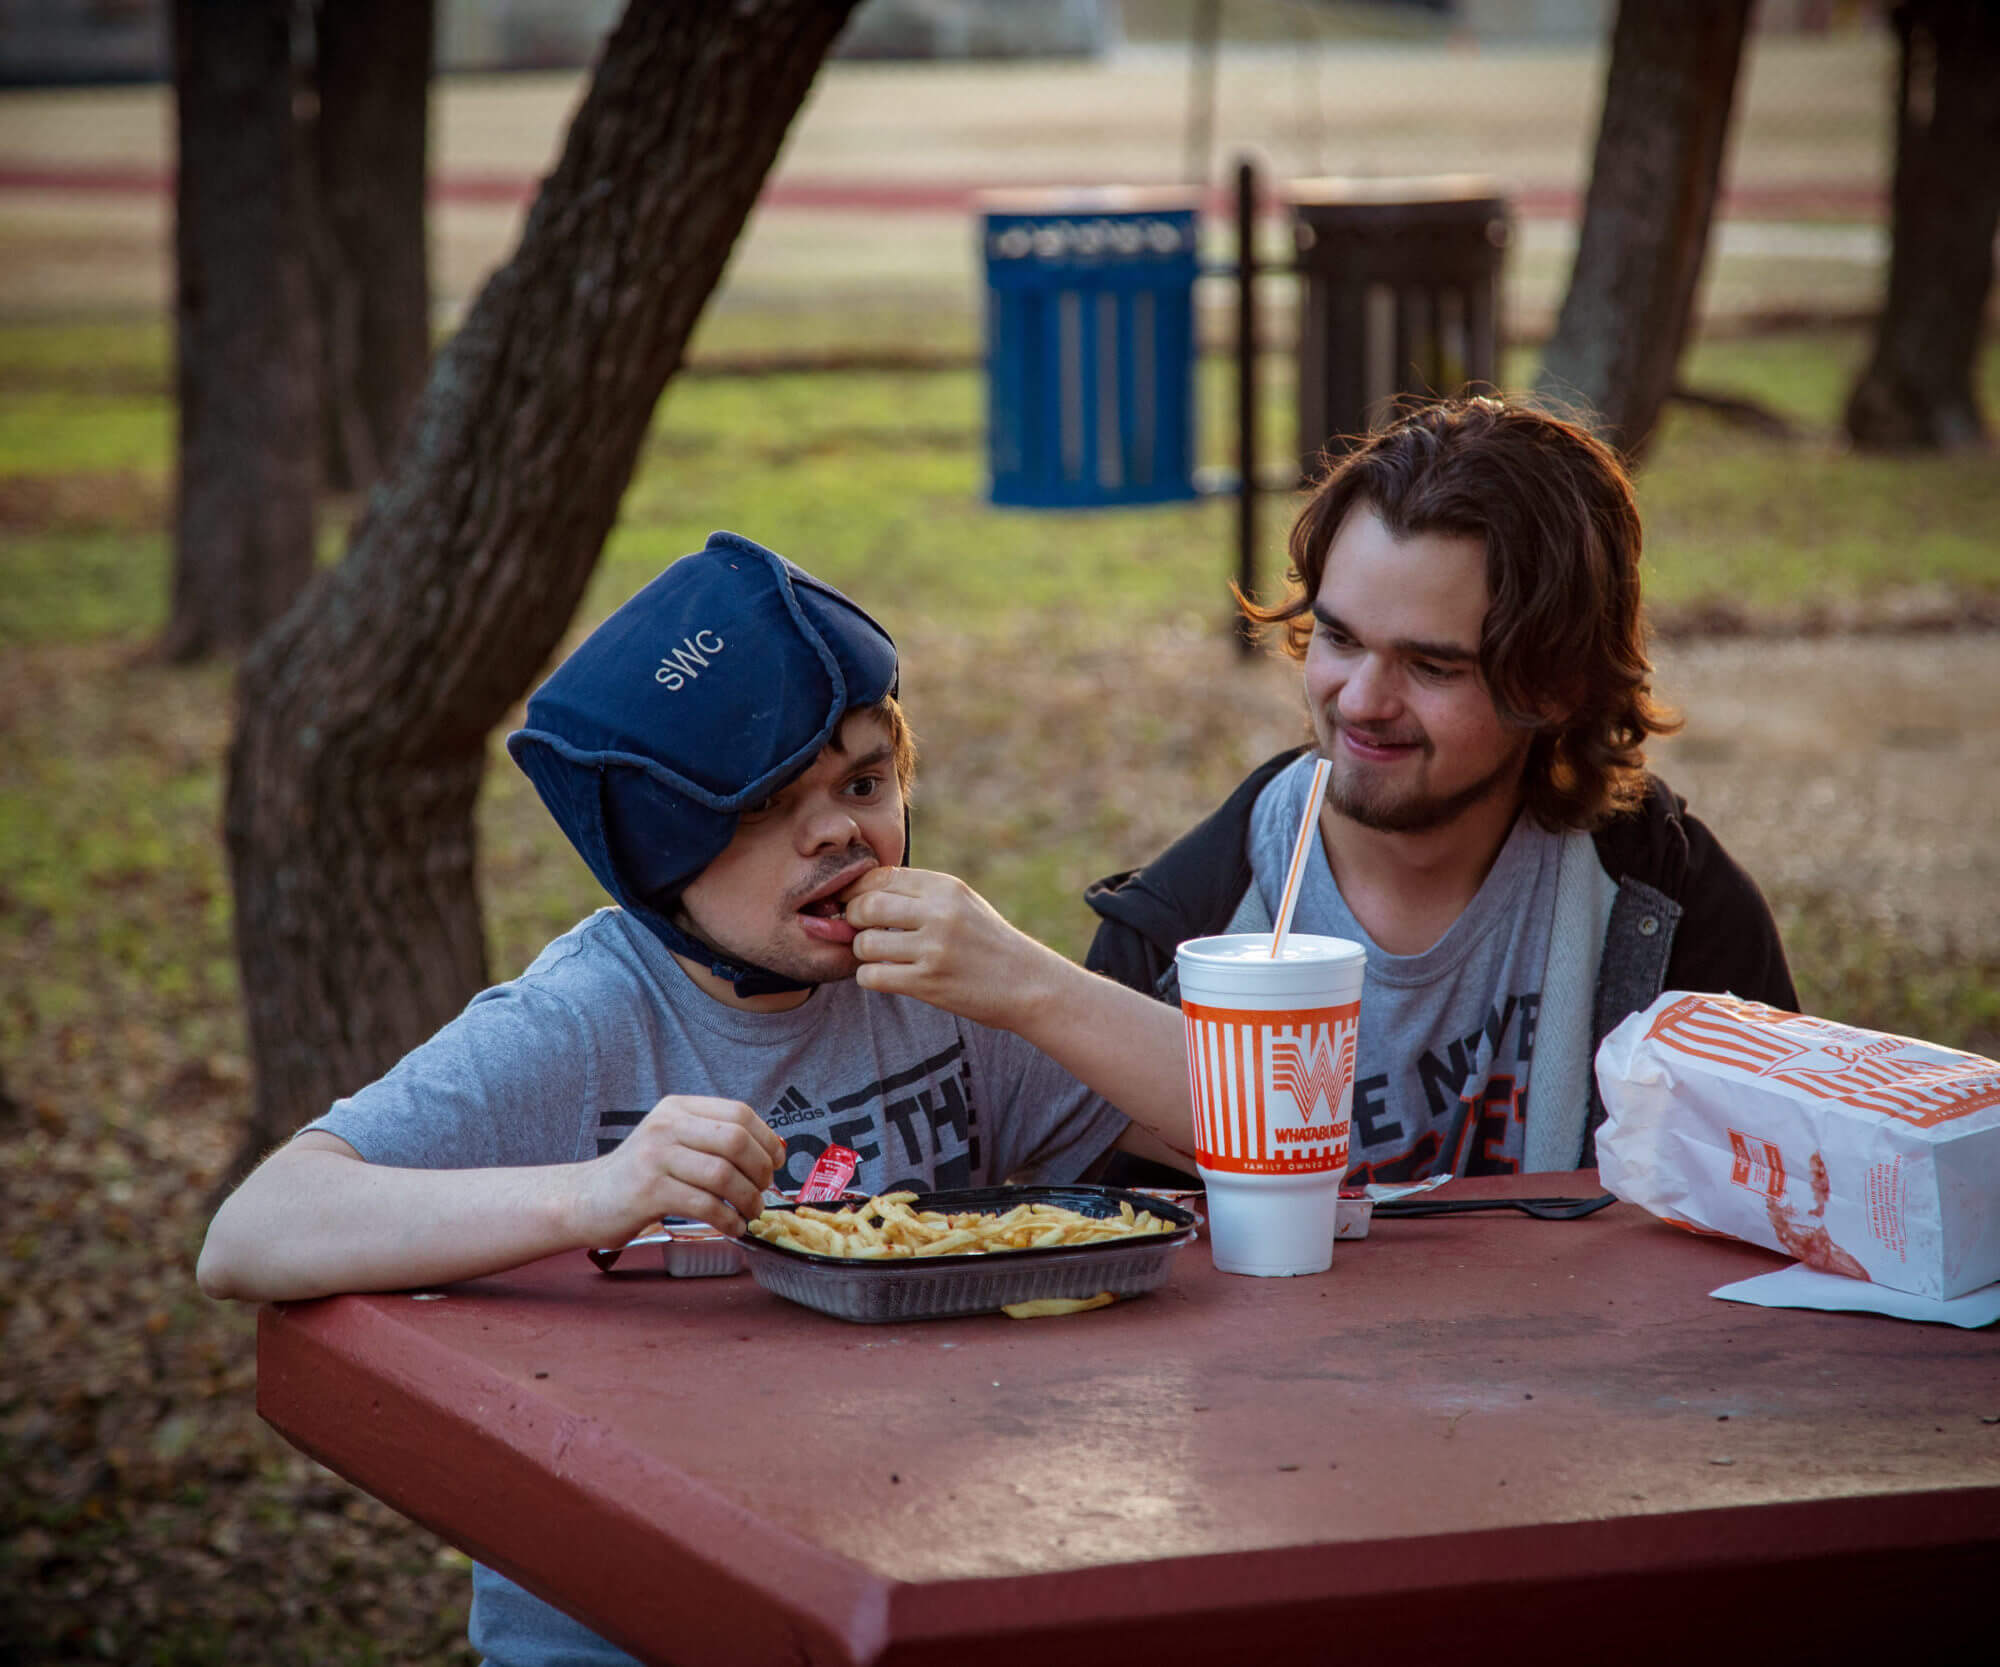 Sam (left) and his brother Noah (right) eating food together.